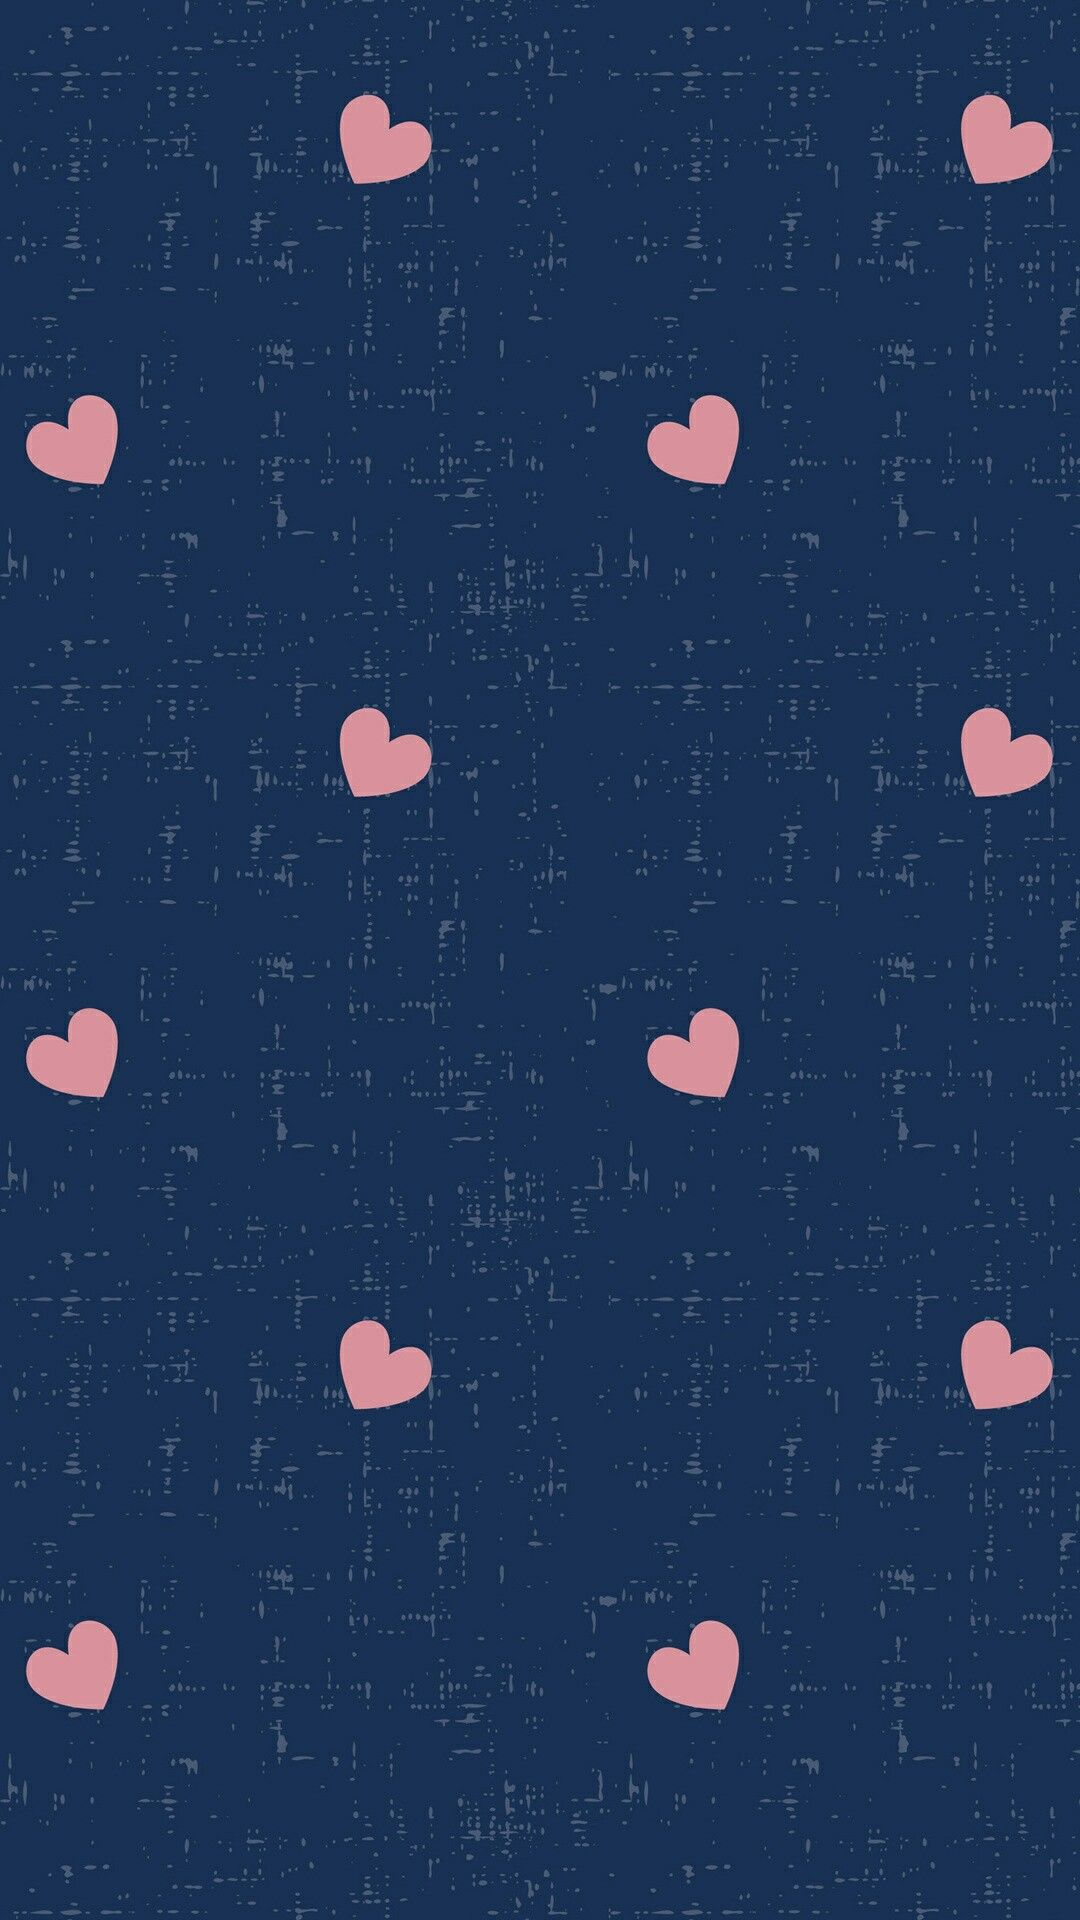 This Is My Navy And Pink Heart Home Screen Wallpaper Android Wallpaper Hd Wallpaper Android Homescreen